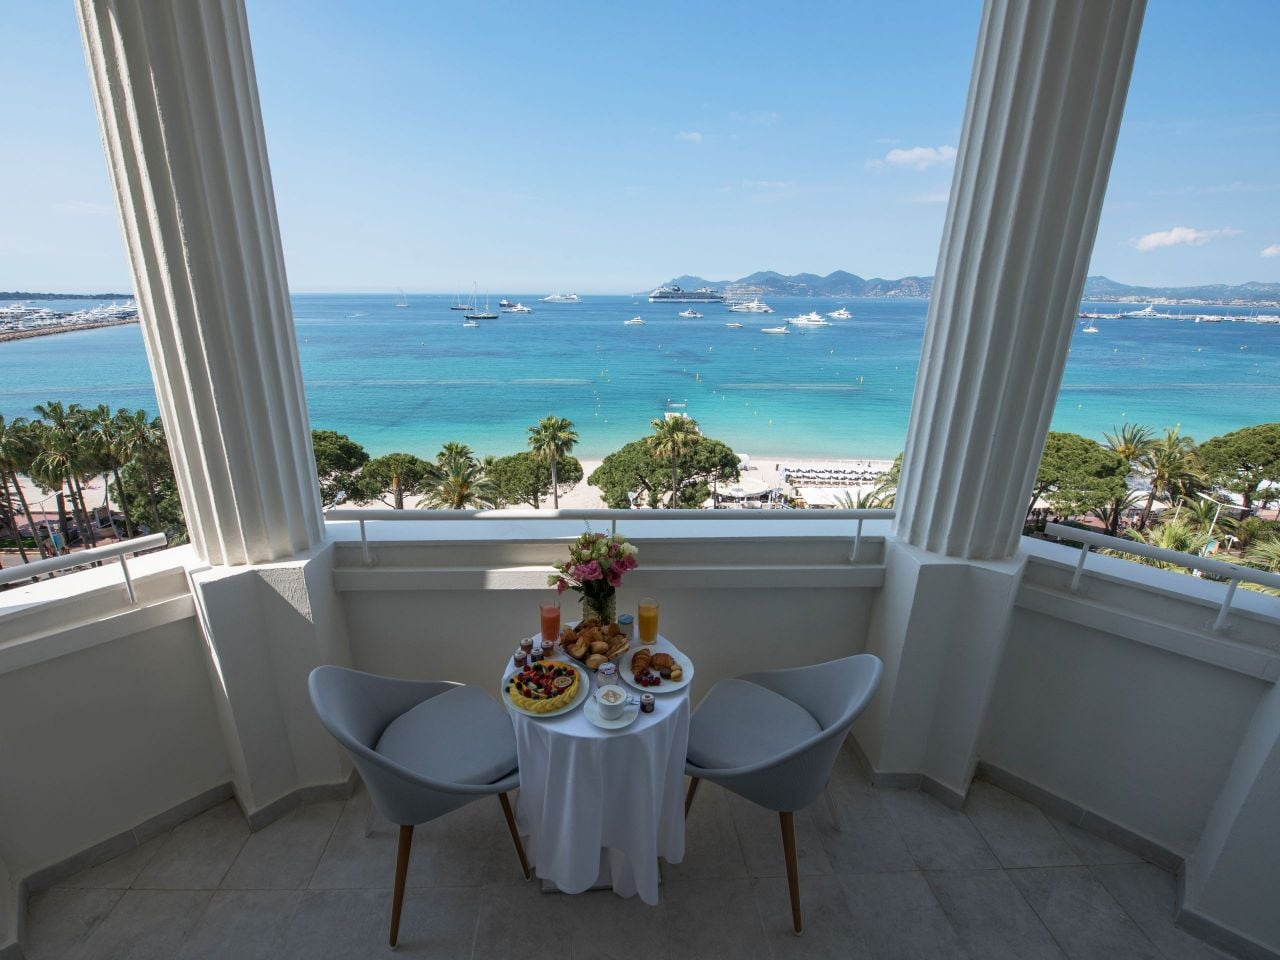 Room service at Hôtel Martinez Cannes by Hyatt